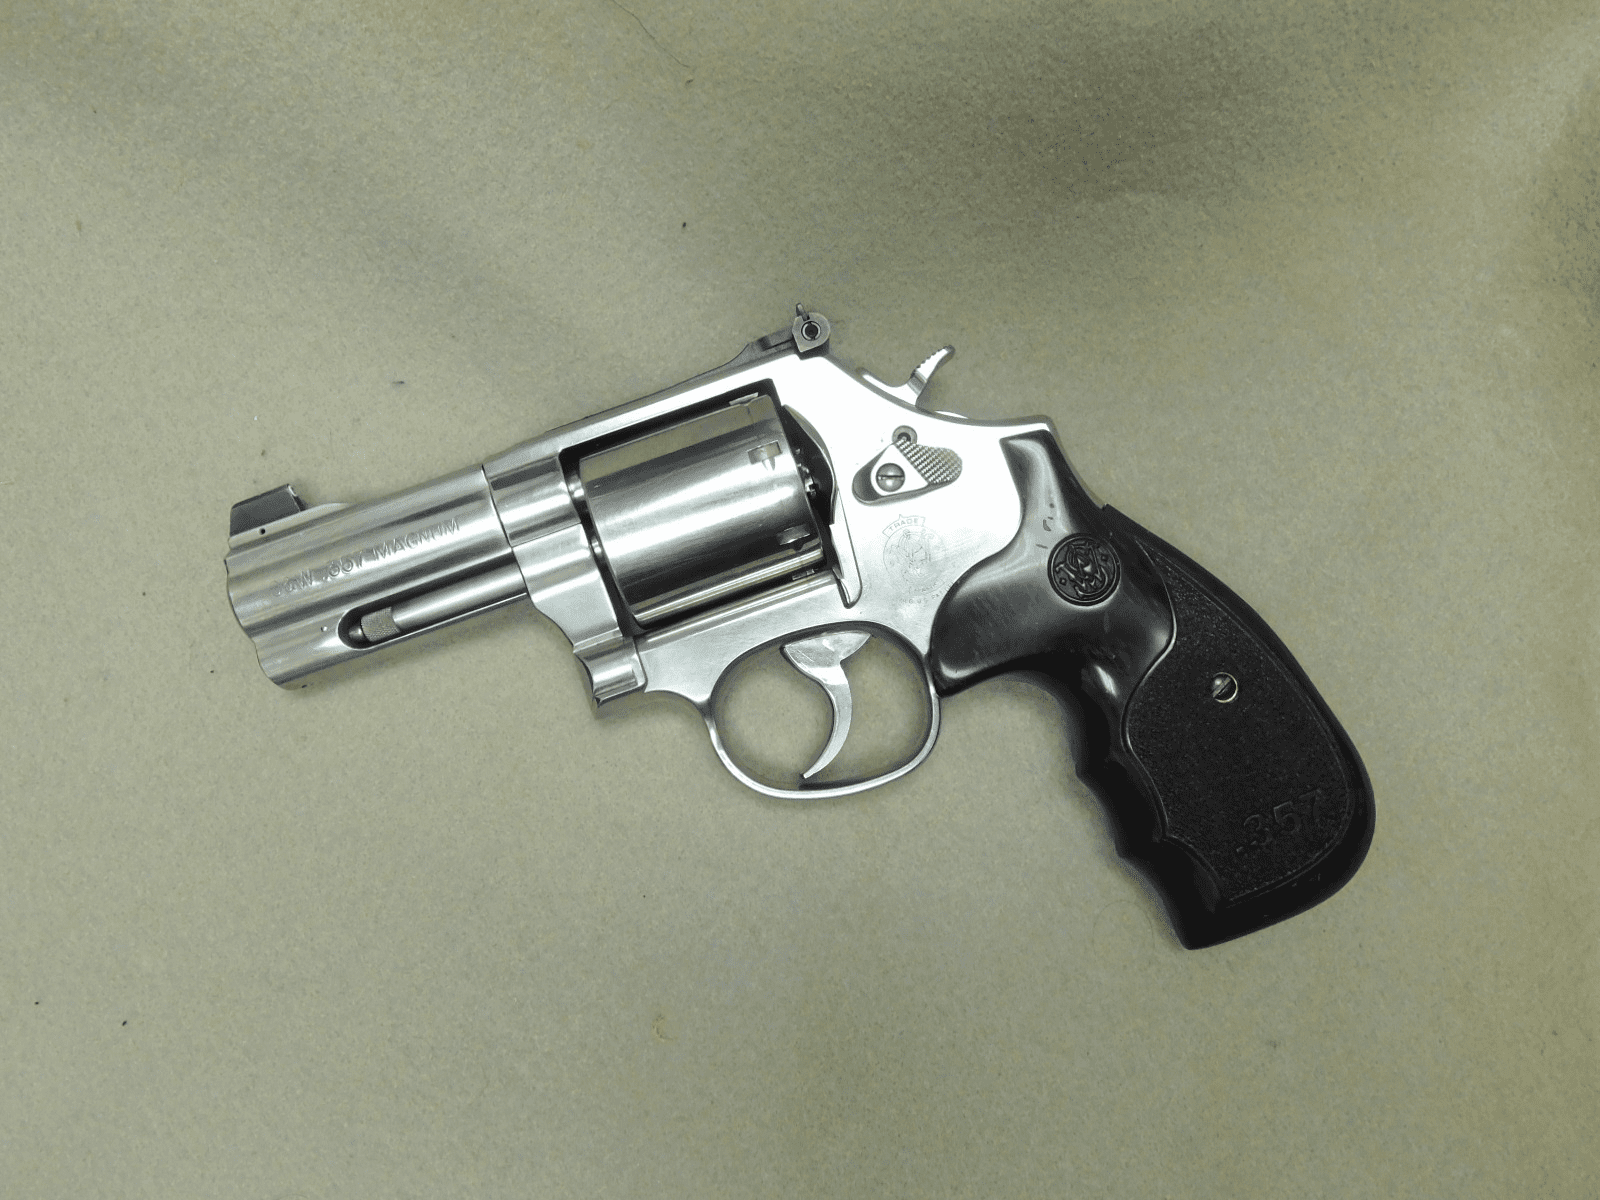 Smith & Wesson 686-6 (.357)